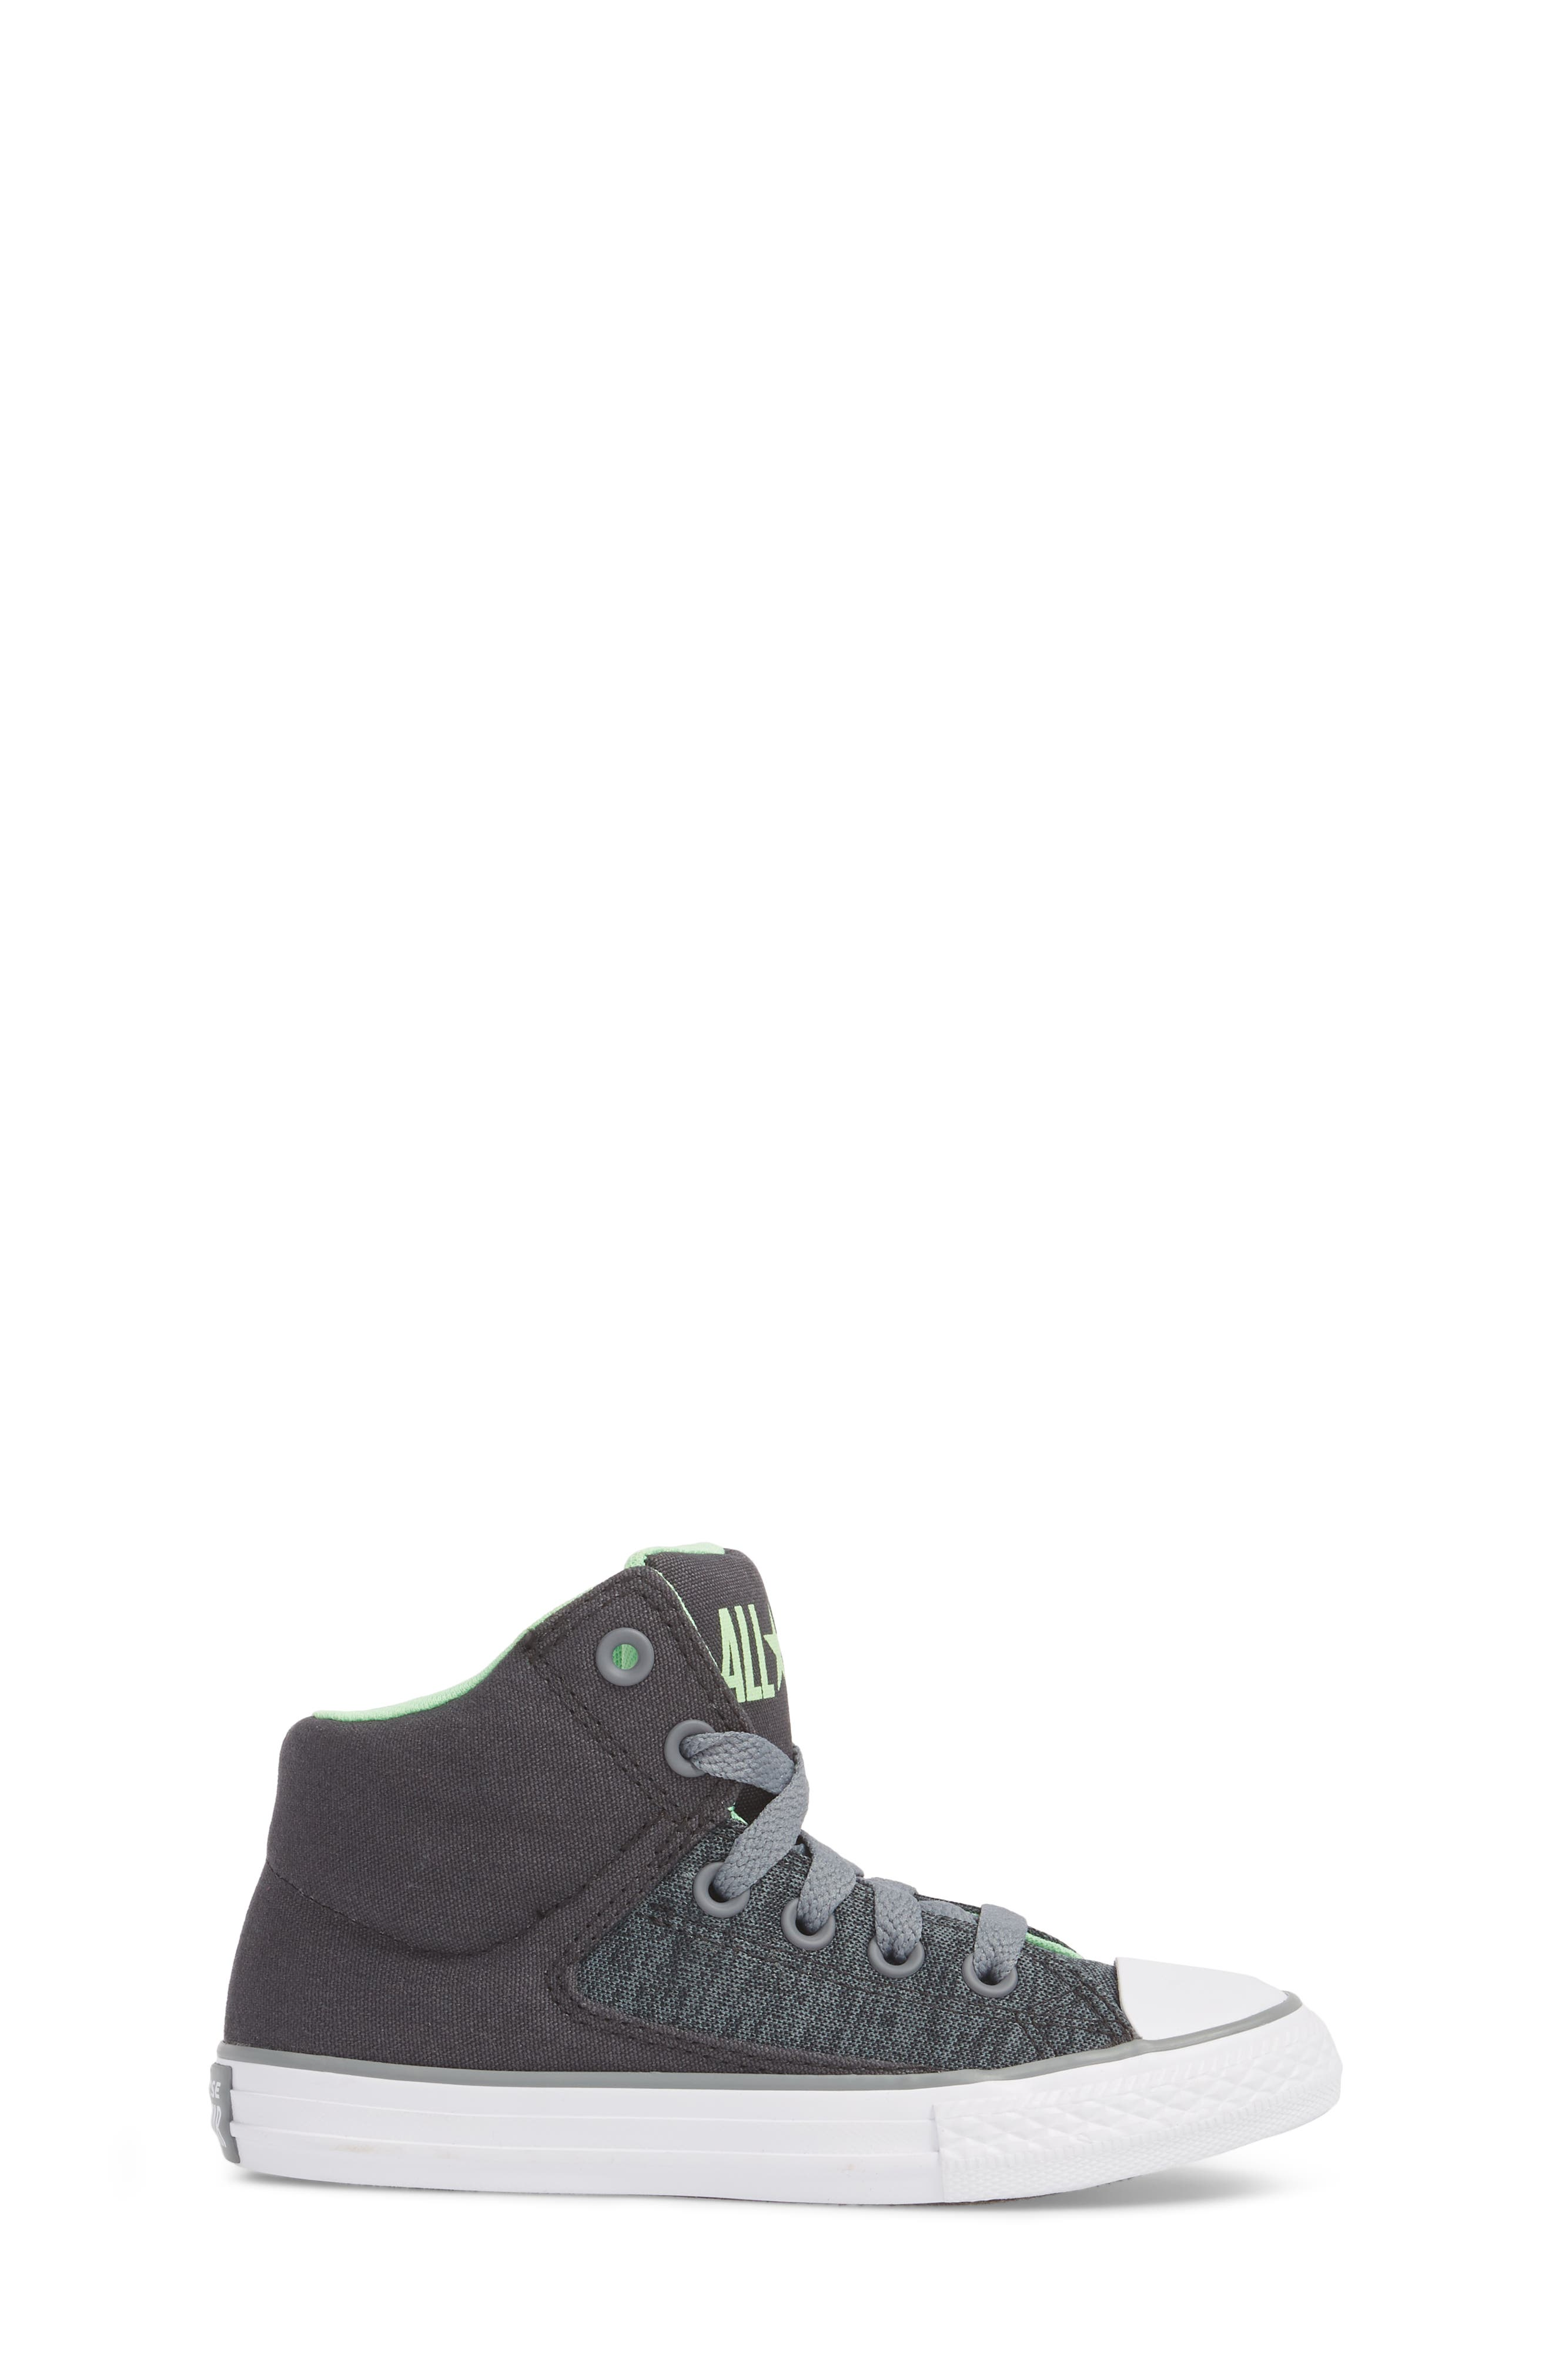 Chuck Taylor<sup>®</sup> All Star<sup>®</sup> High Street High Top Sneaker,                             Alternate thumbnail 3, color,                             012